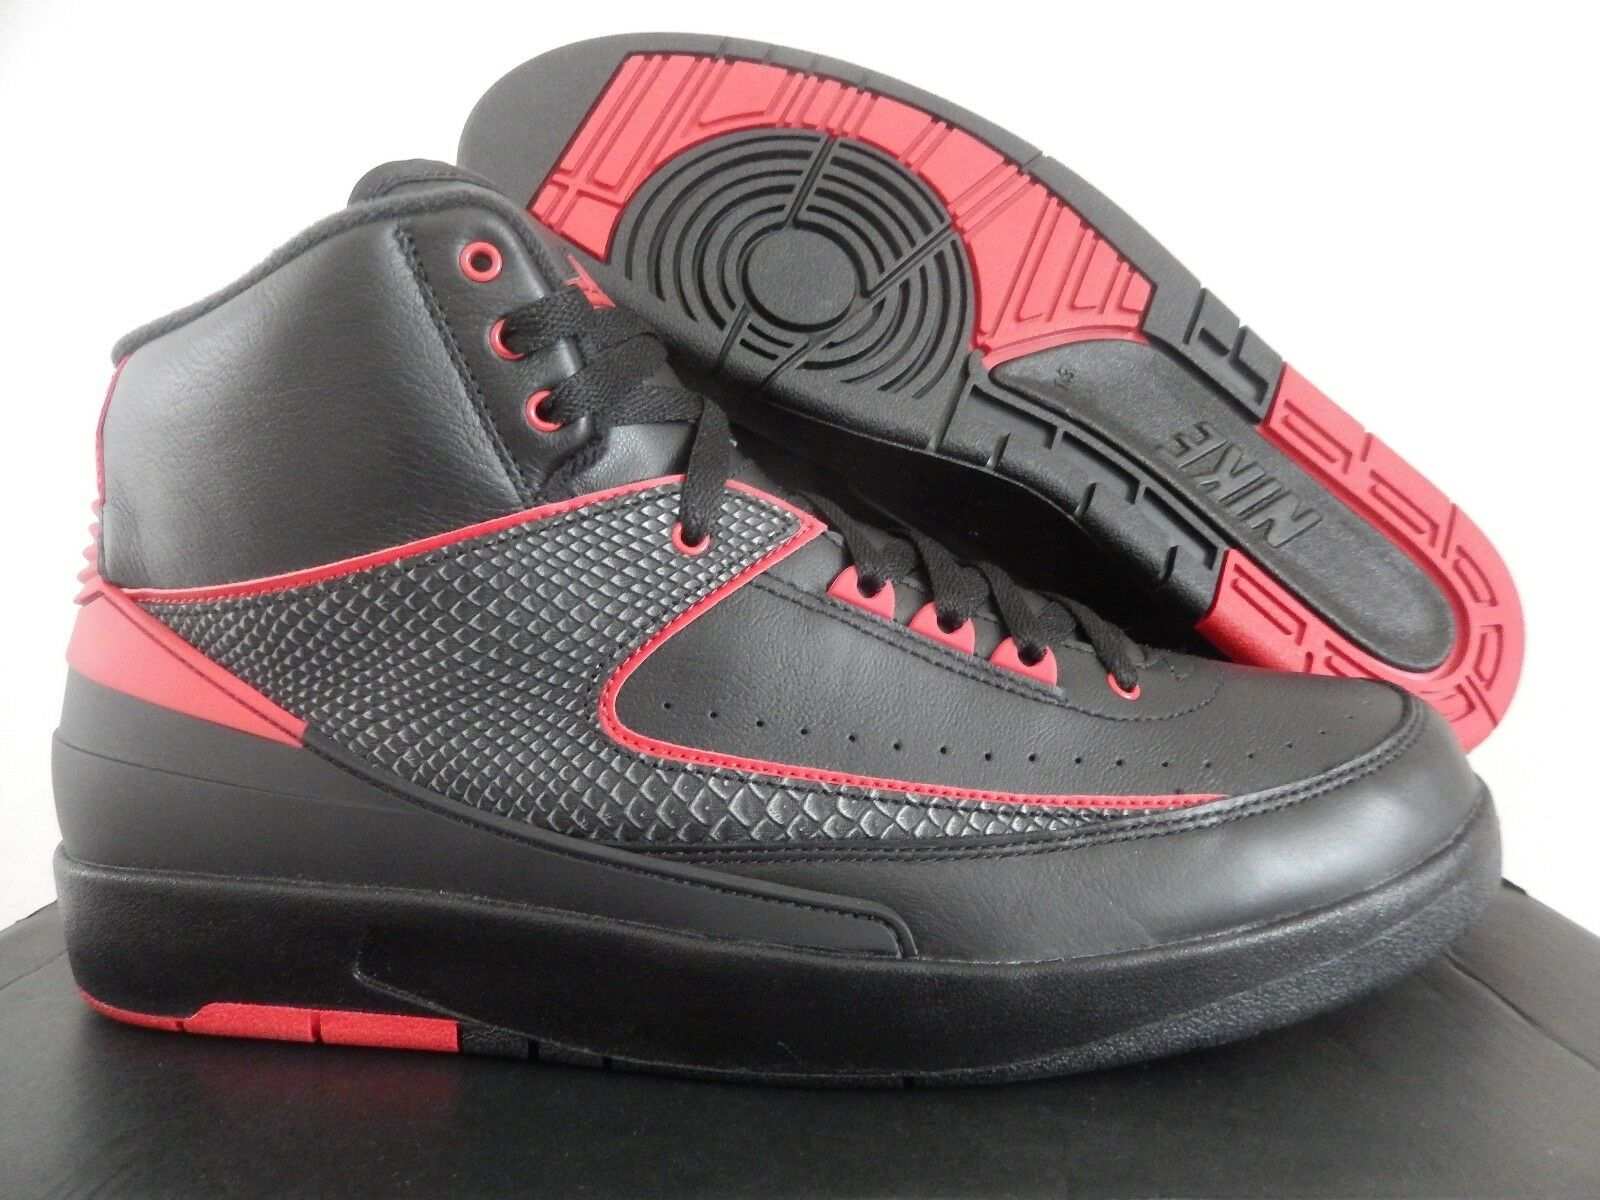 MEN'S NIKE AIR JORDAN 2 RETRO BLACK-VARSITY RED